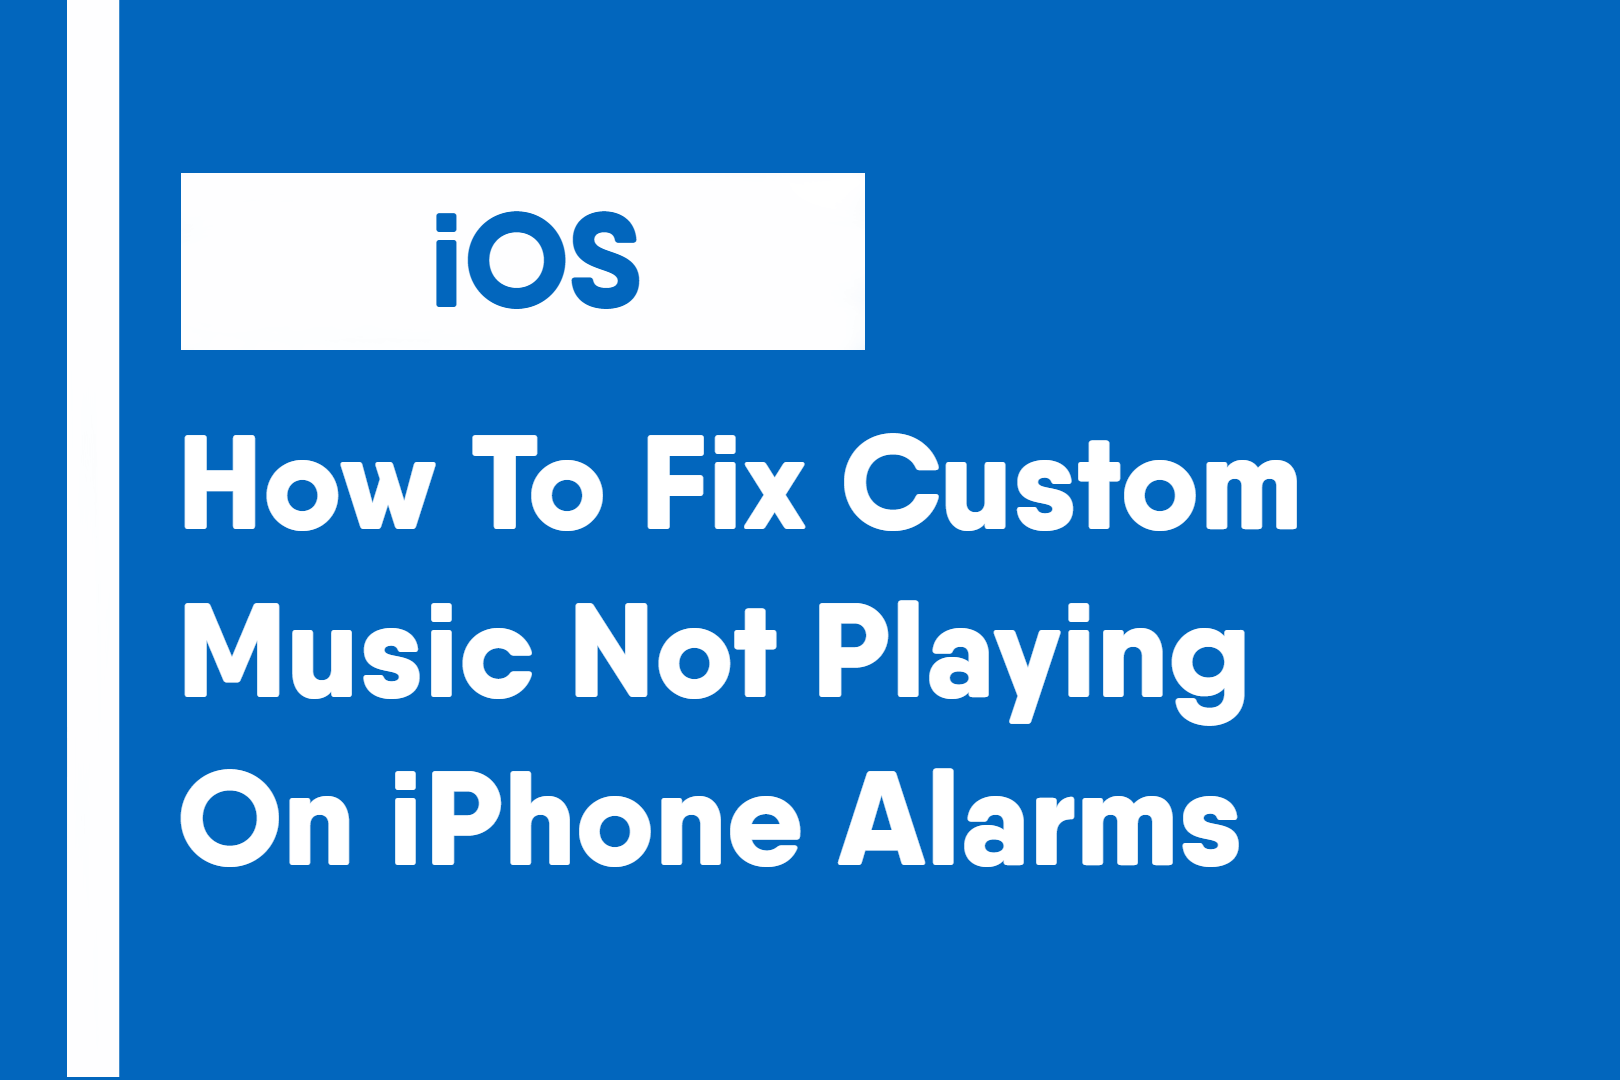 How To Fix Custom Music Not Playing On iPhone Alarms